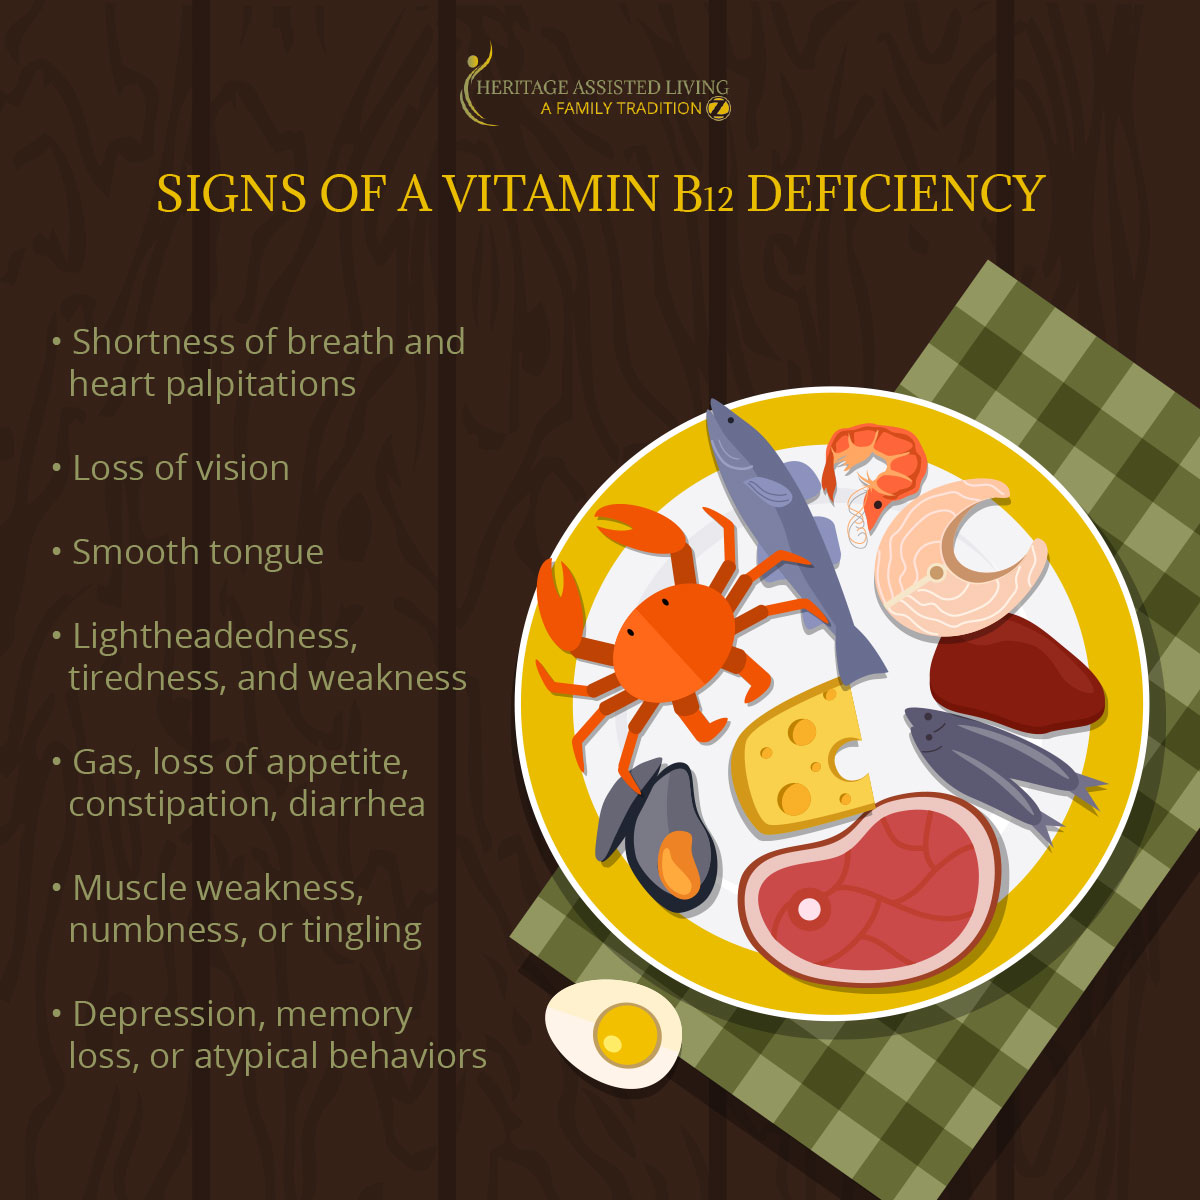 Signs-of-a-Vitamin-B12-Deficiency-Infographic